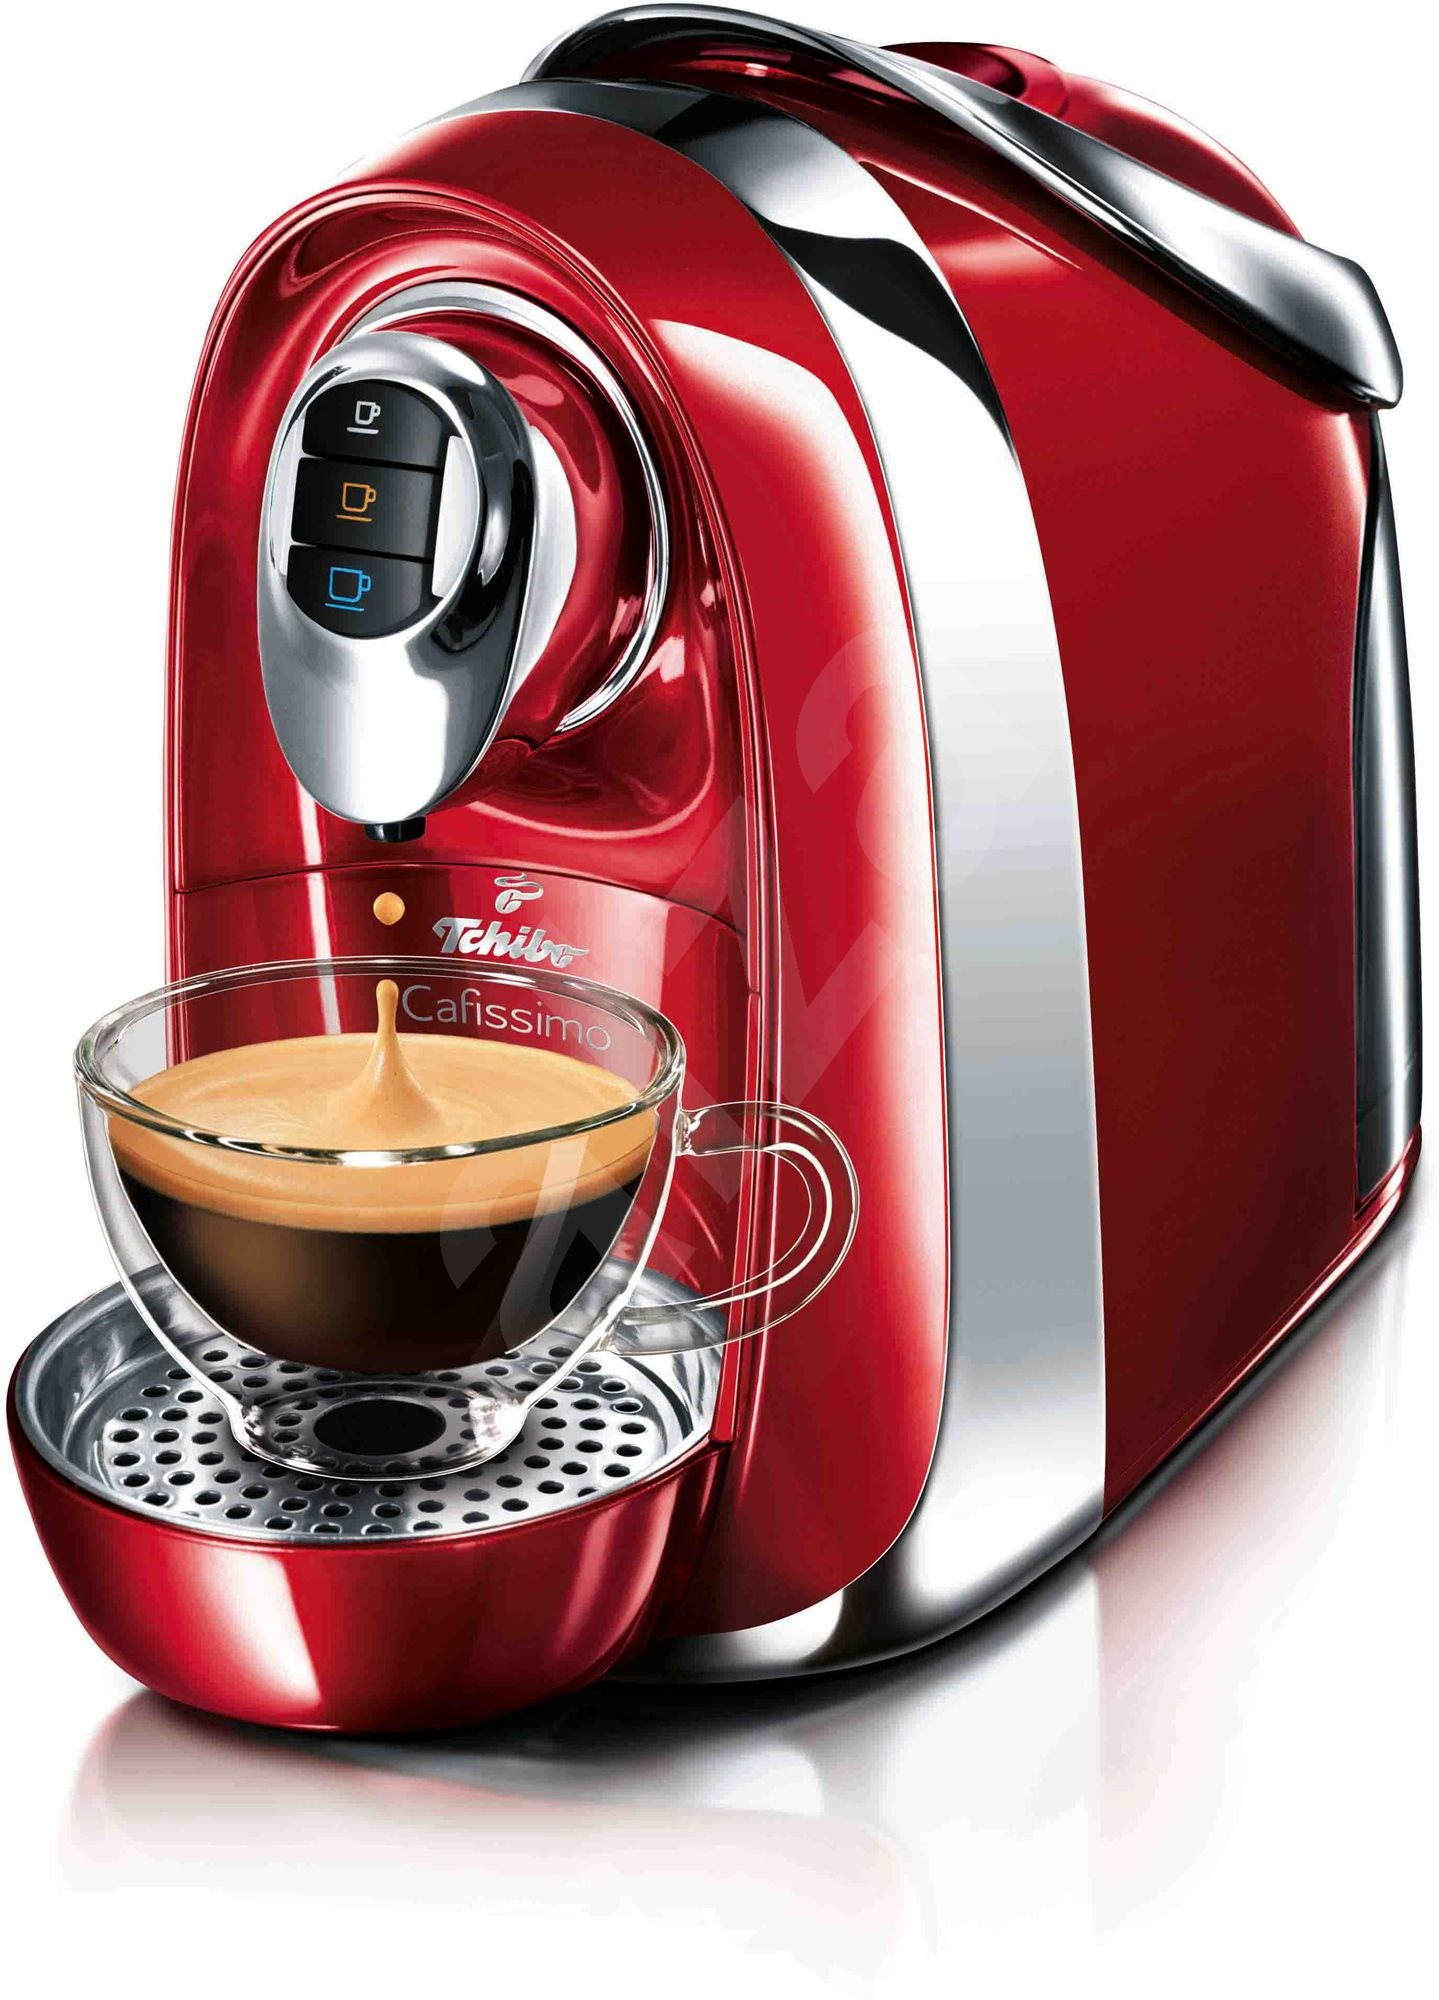 tchibo cafissimo compact red hot espresso machine. Black Bedroom Furniture Sets. Home Design Ideas